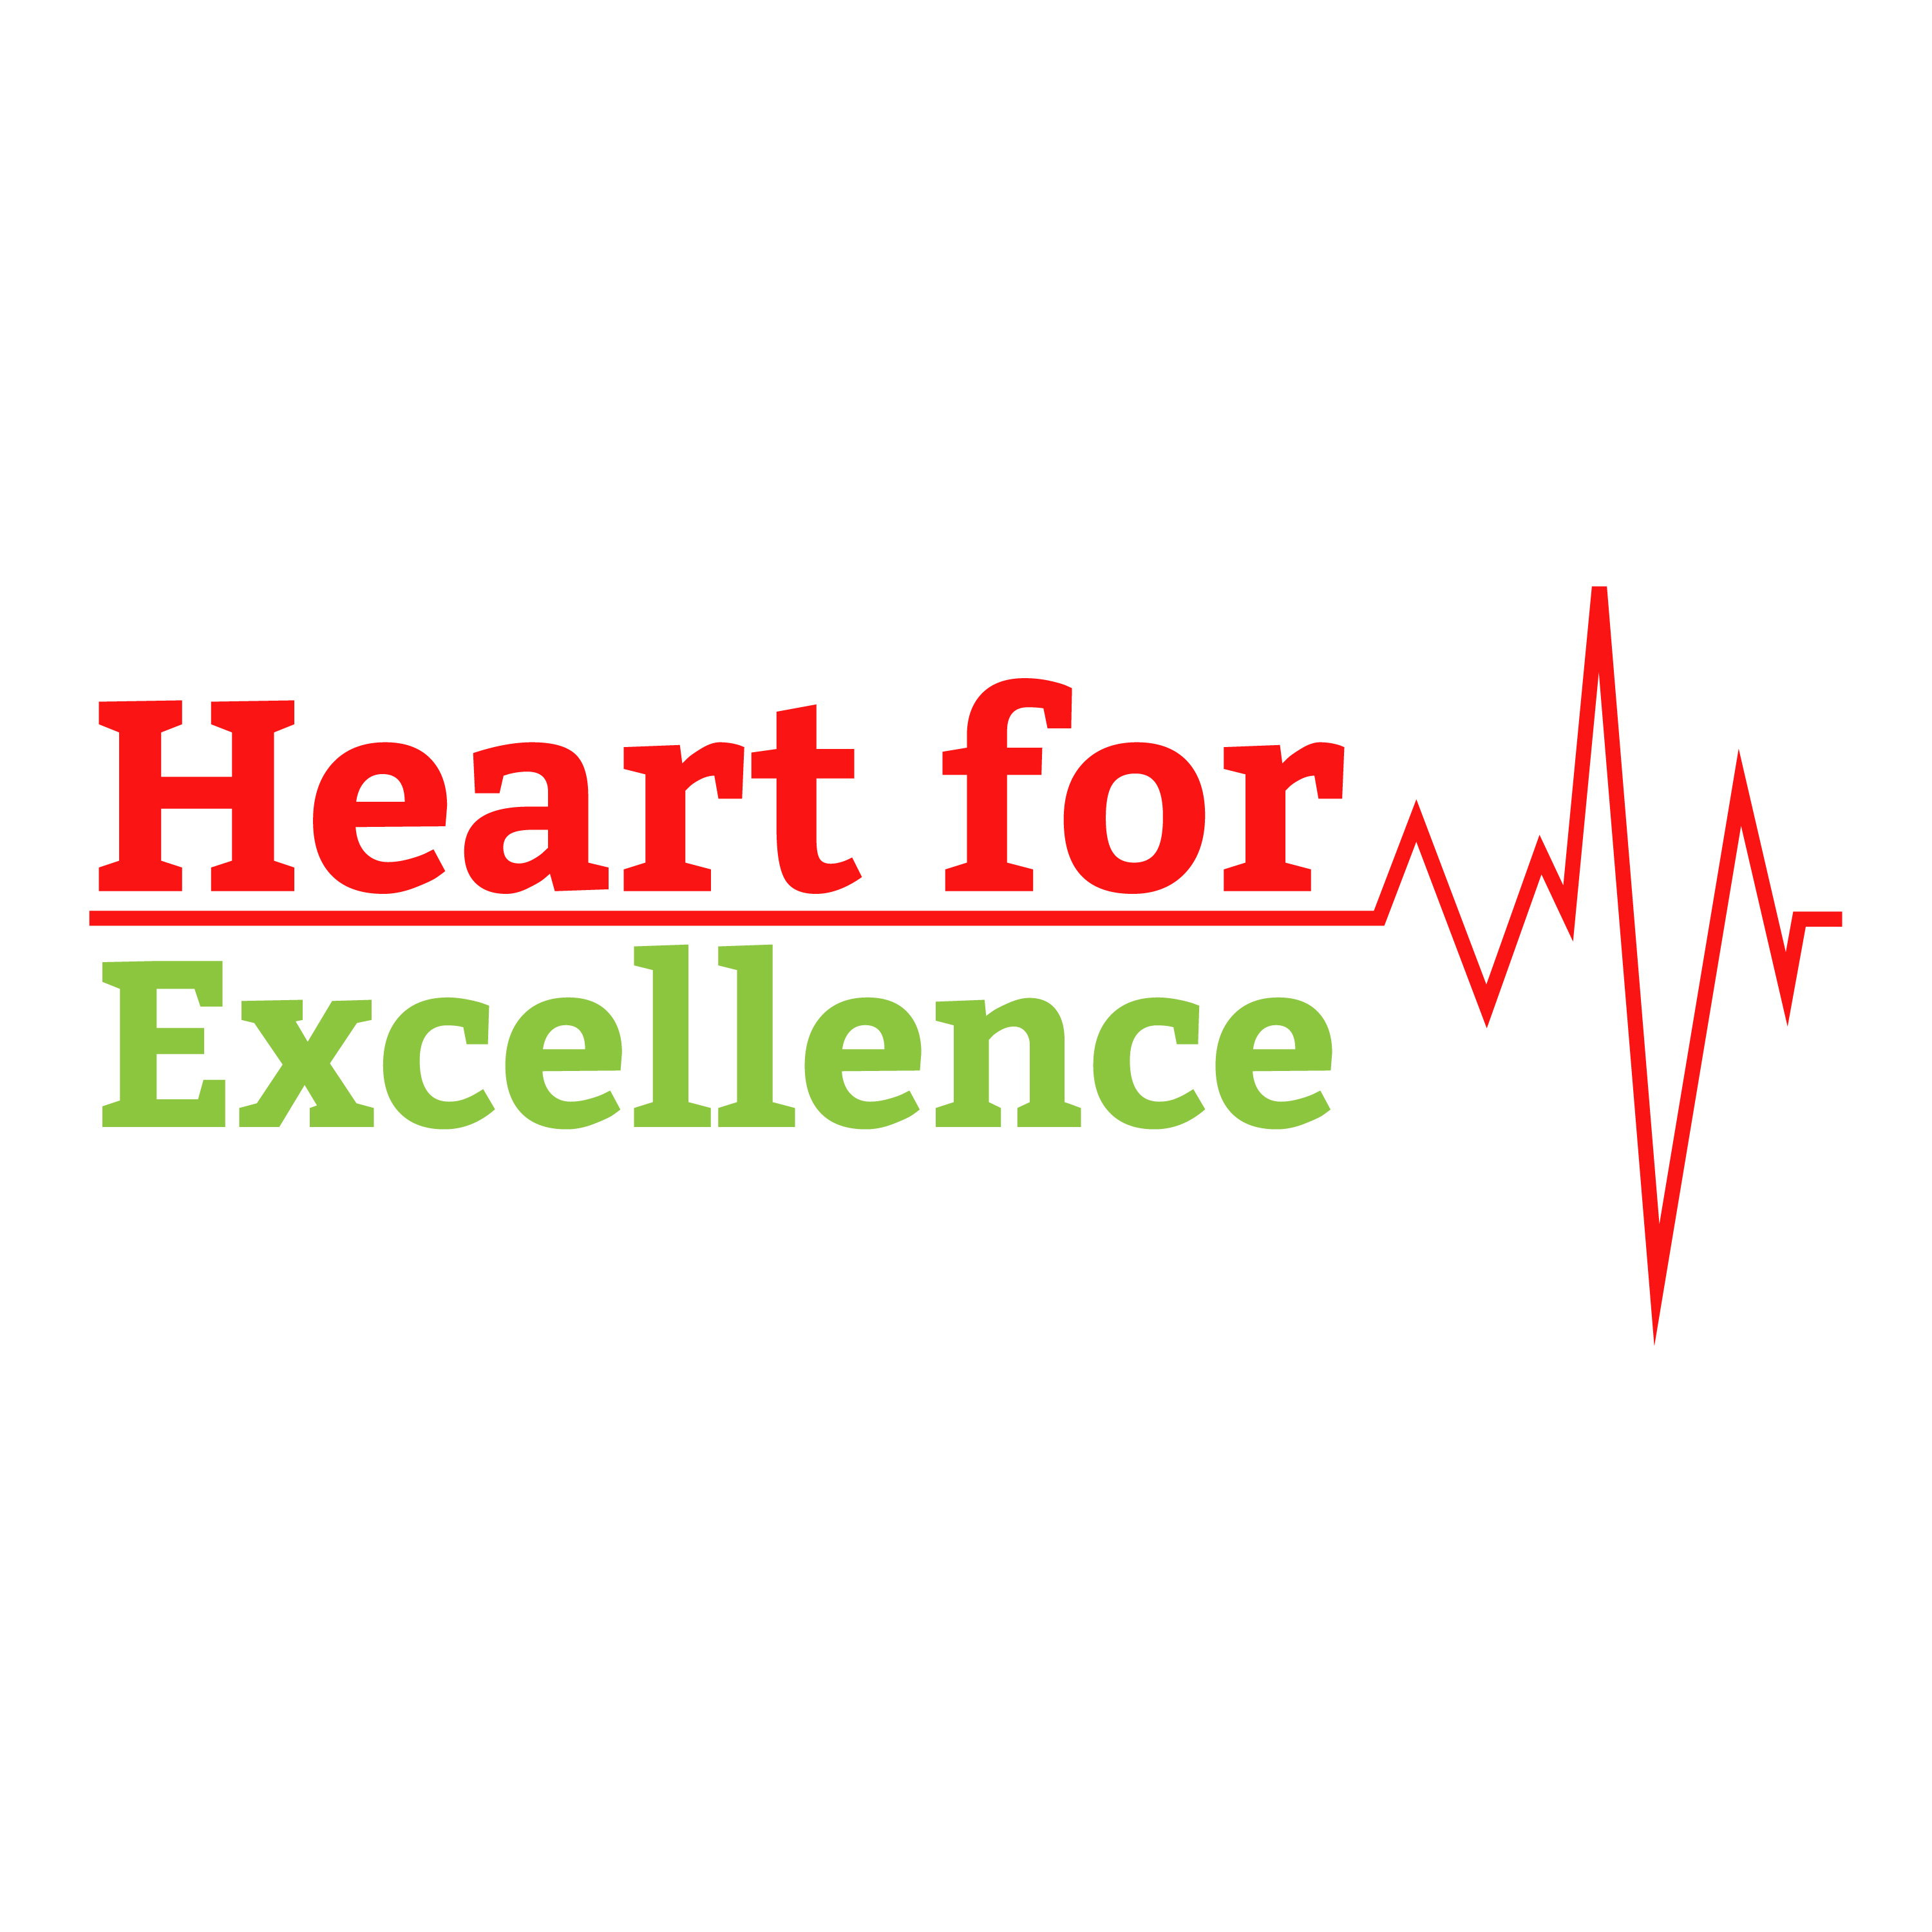 Heart for Excellence